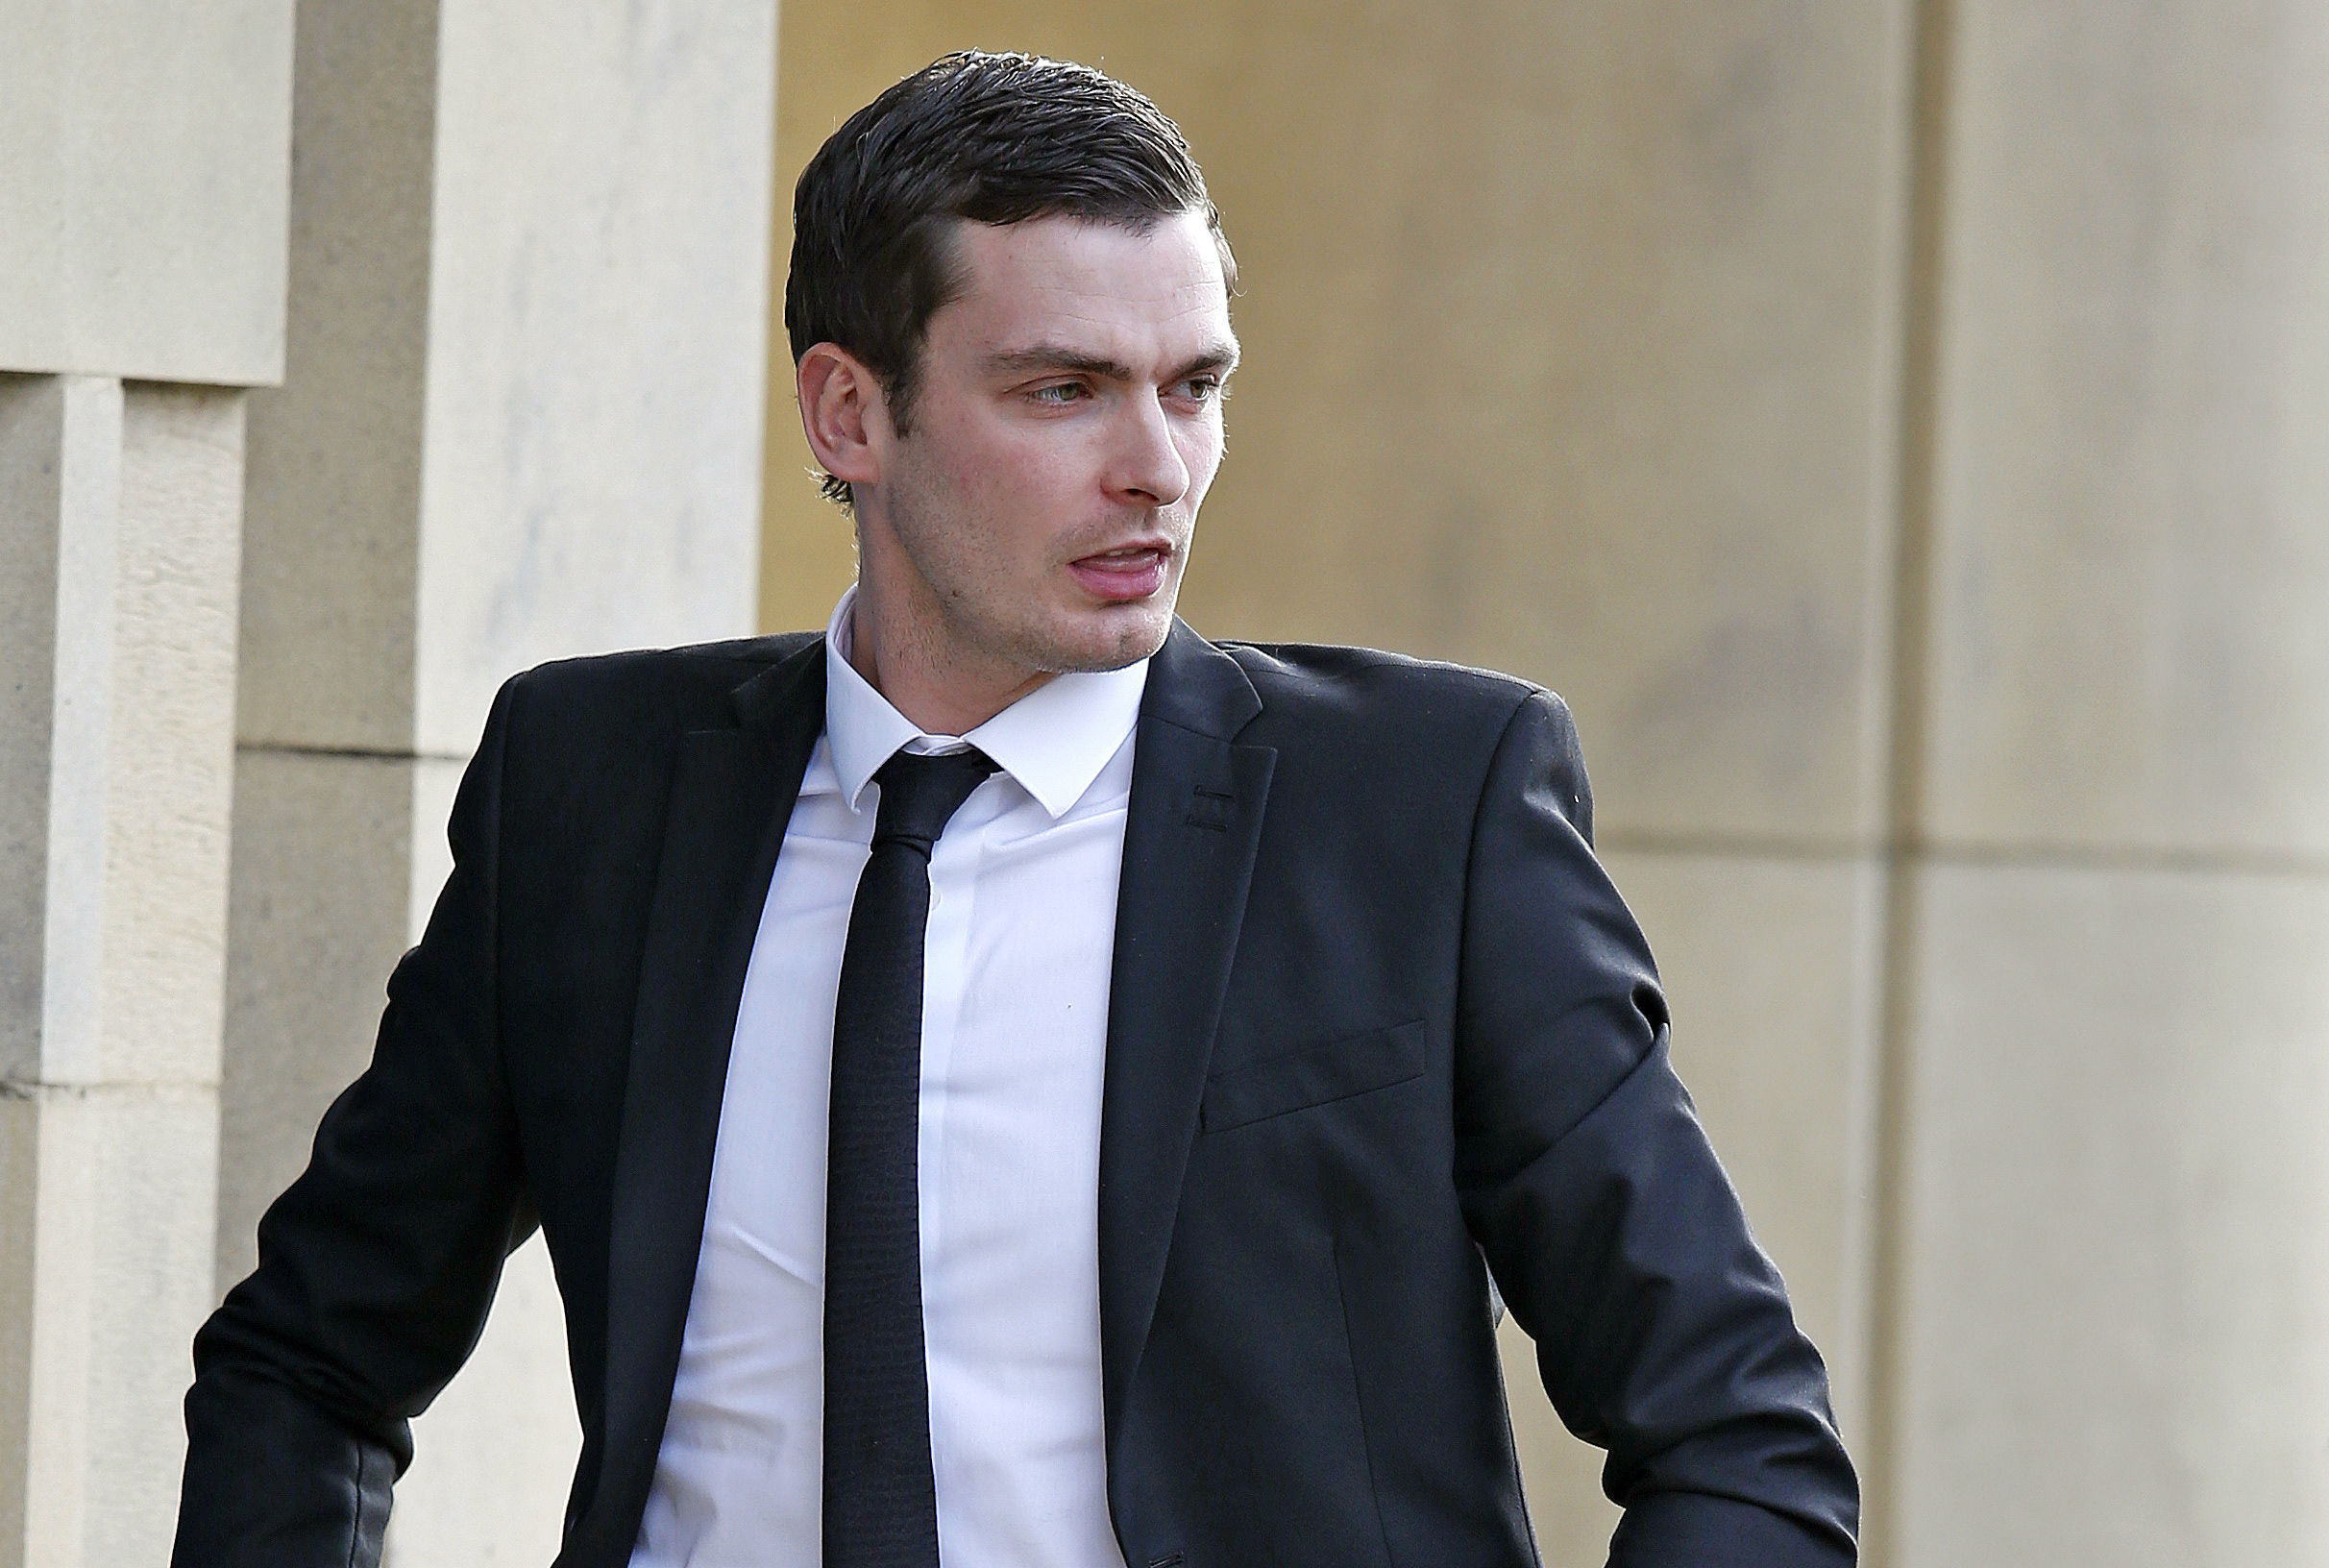 johnspon4 Adam Johnson Attacked In Jail After Getting Cocky With Other Inmates